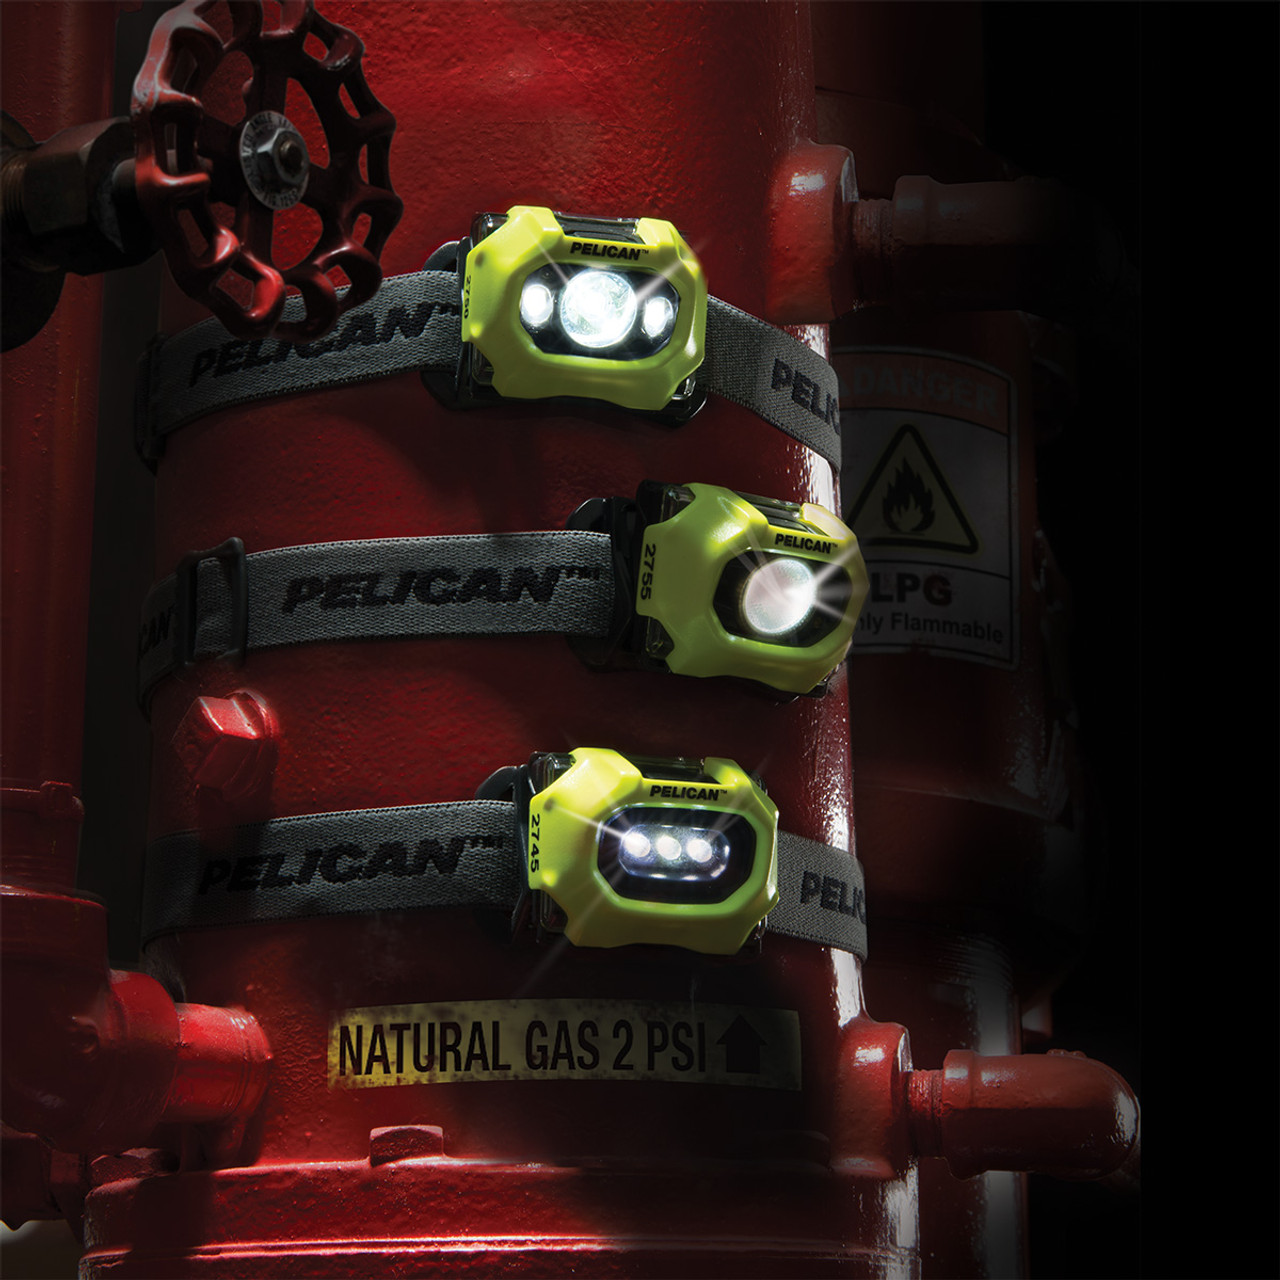 Pelican LED Headlamp, Comfortable Cloth Strap, Available in Black or High Visibility Yellow 2755